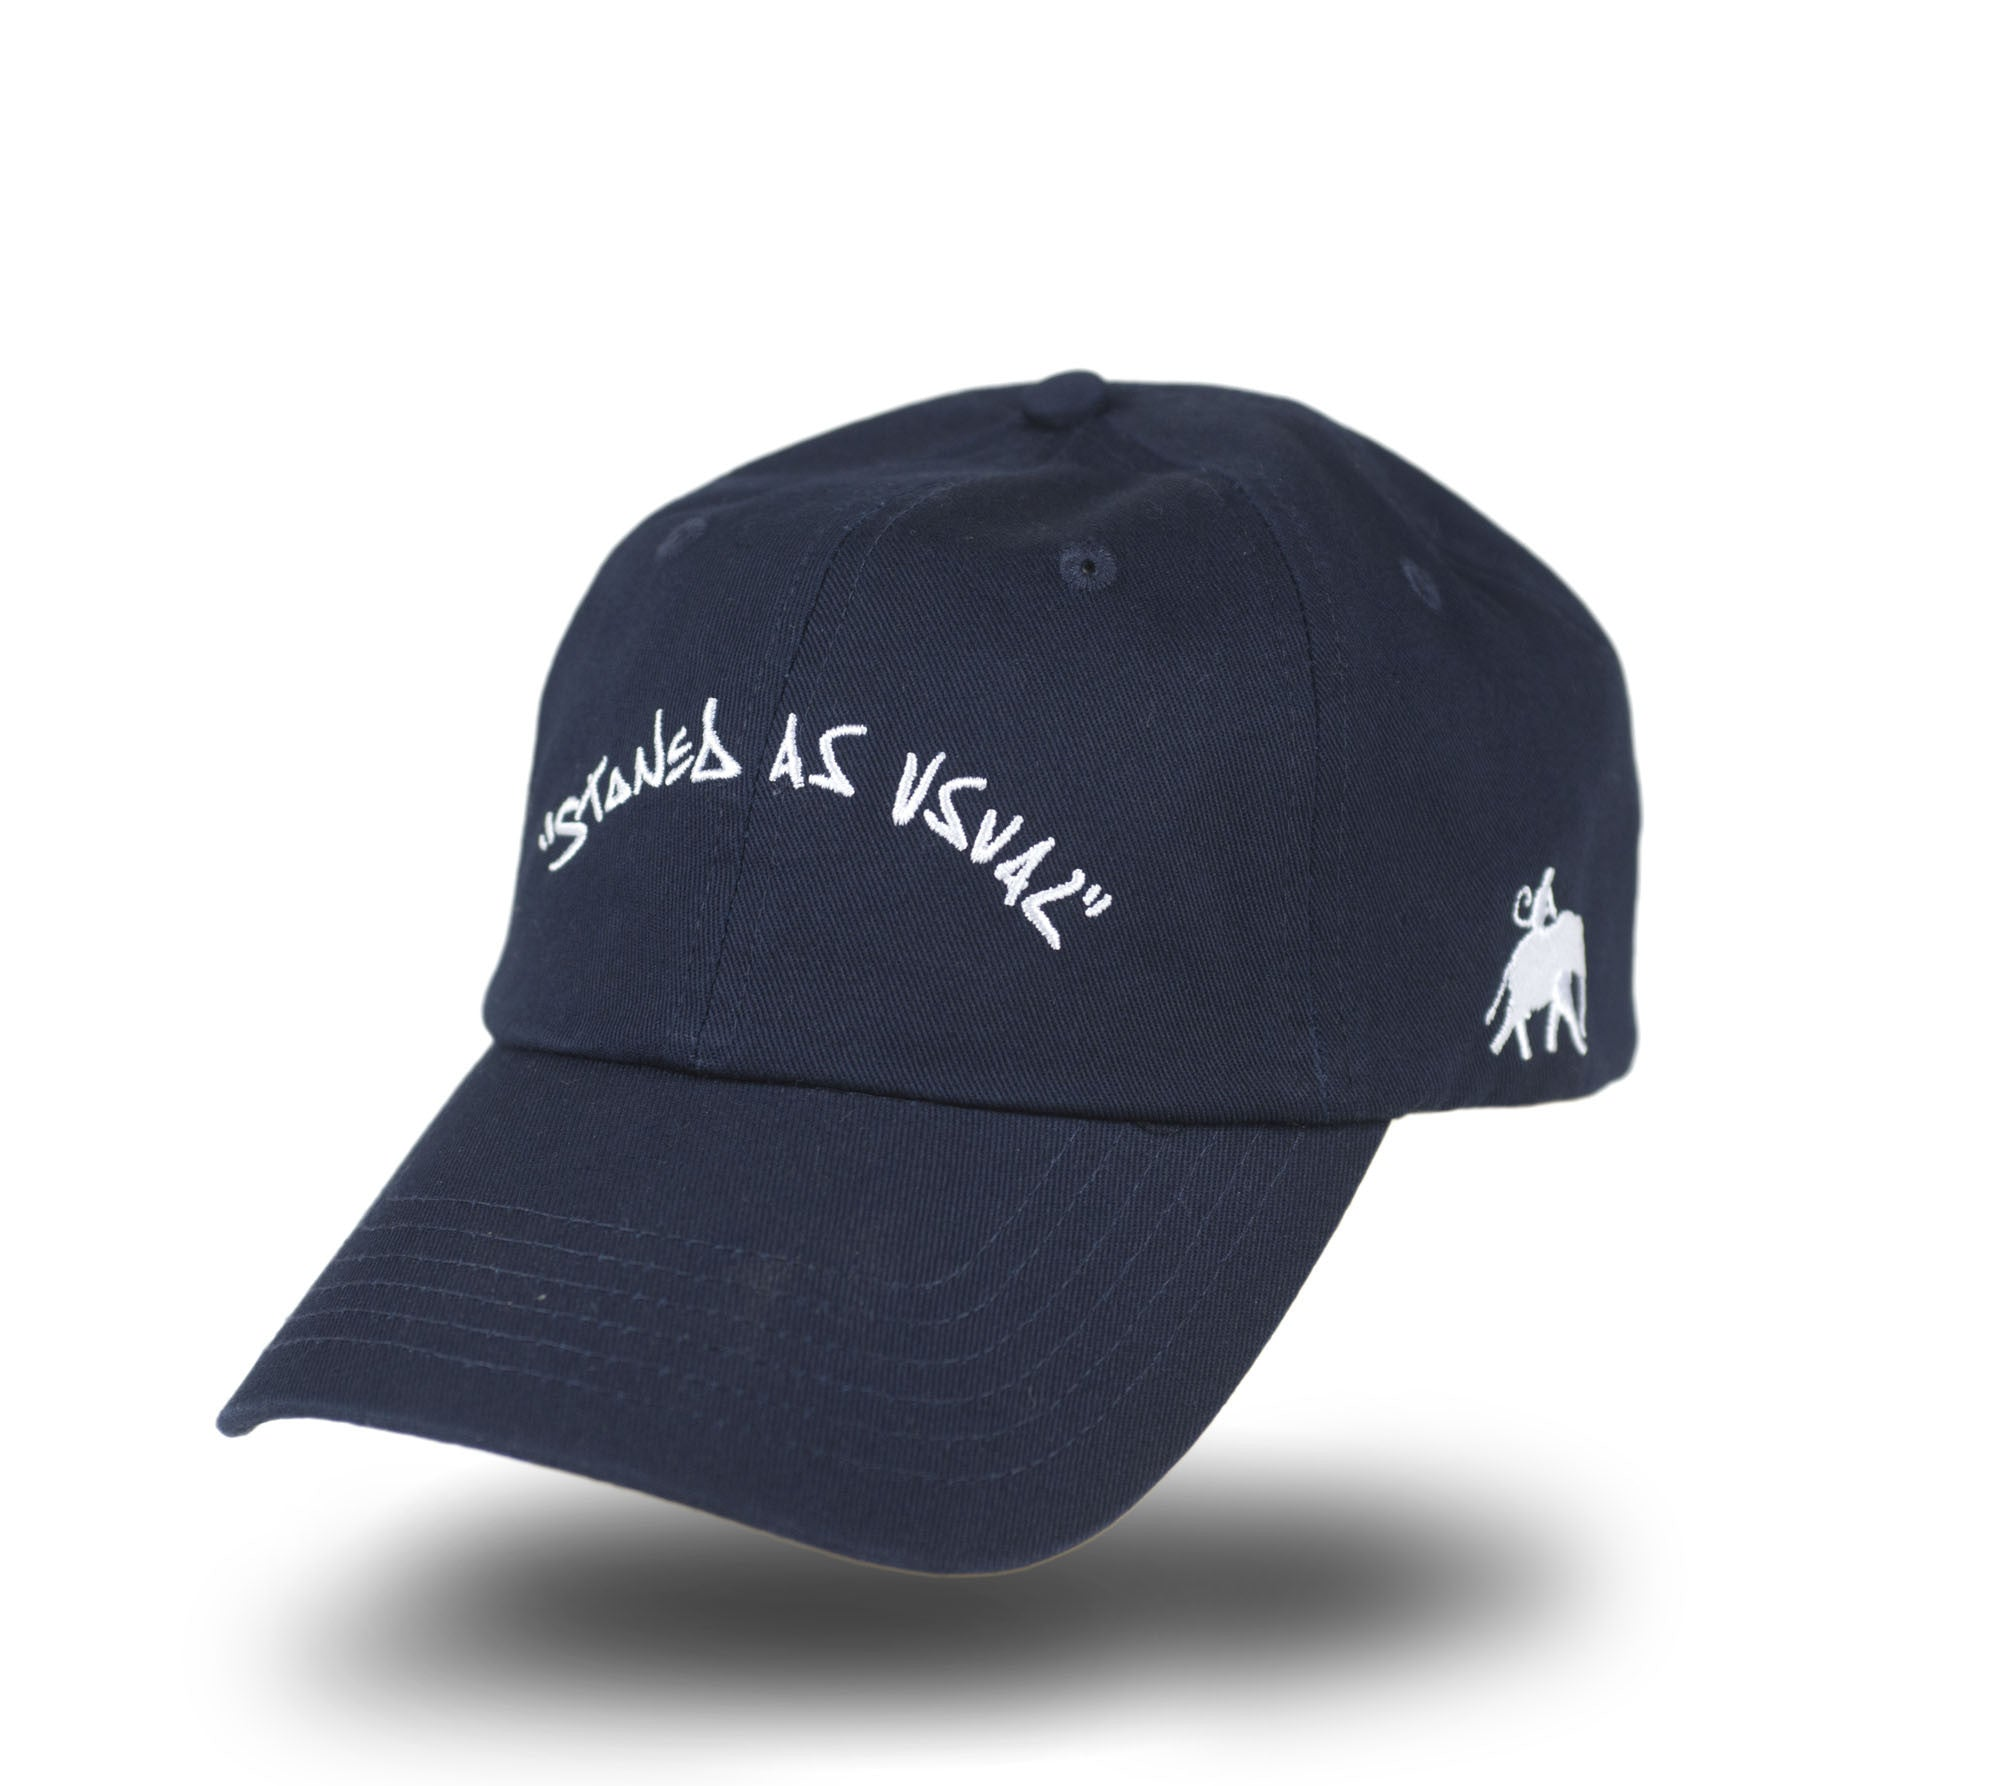 Stoned As Usual Dad Cap - Navy